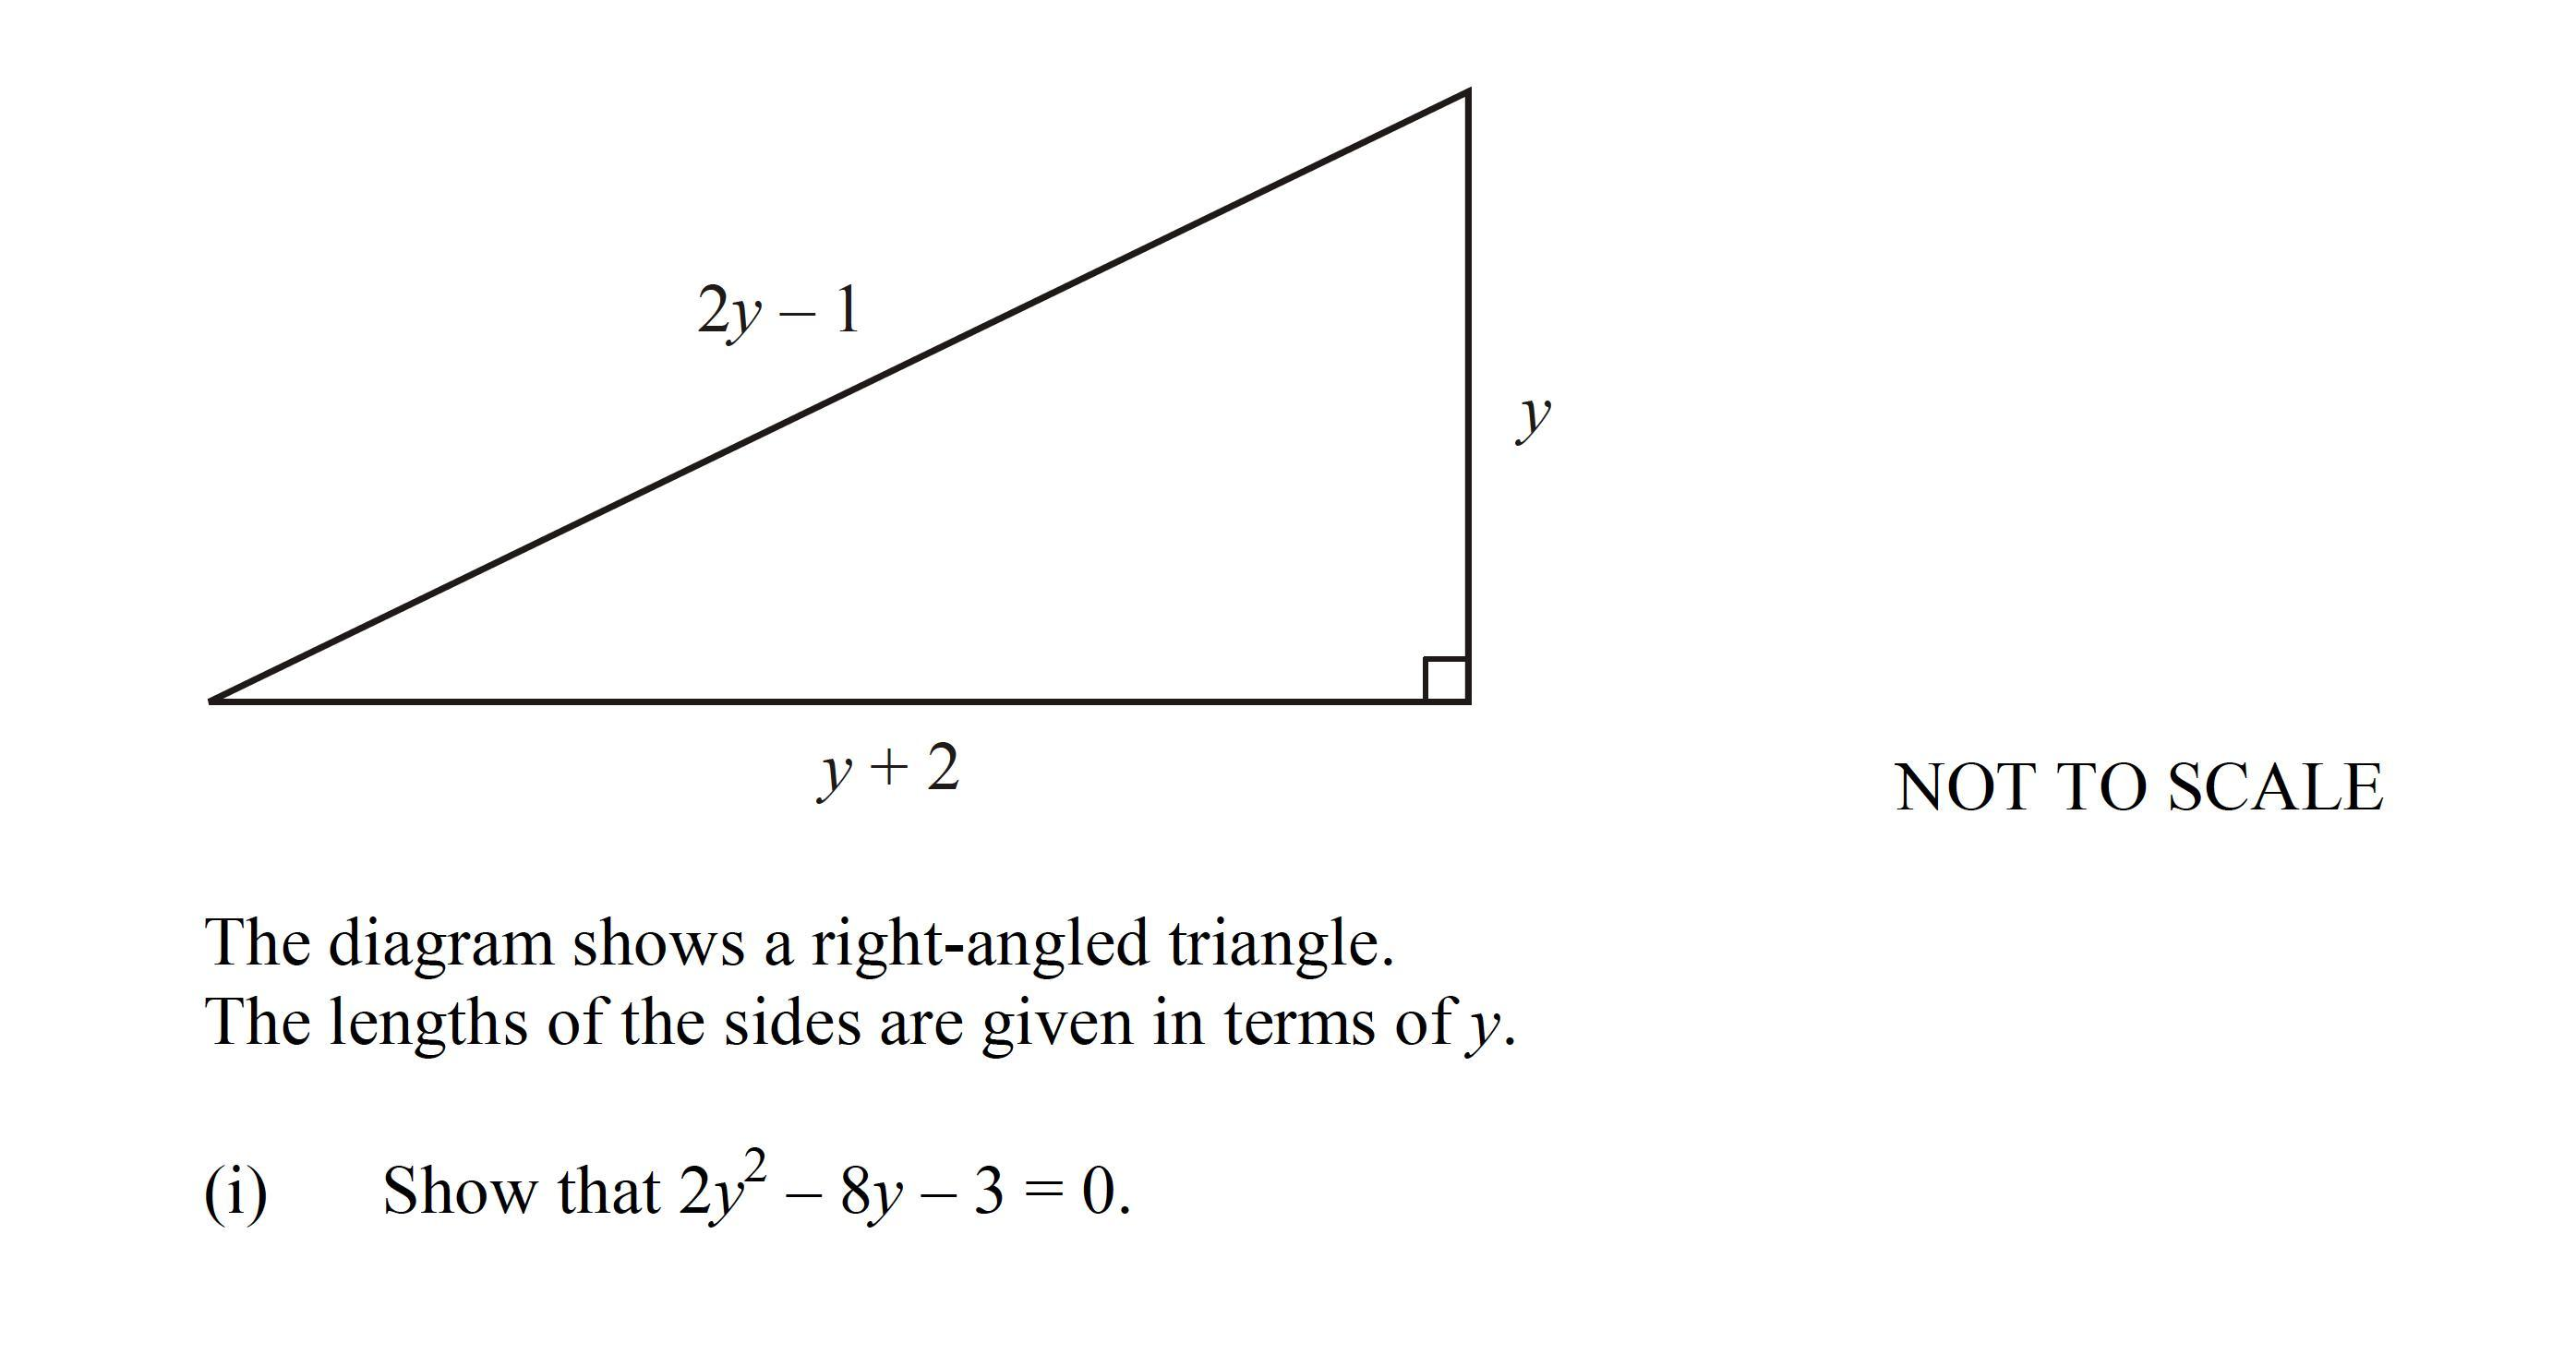 the diagram shows a right-angled triangle  the lengths of the sides